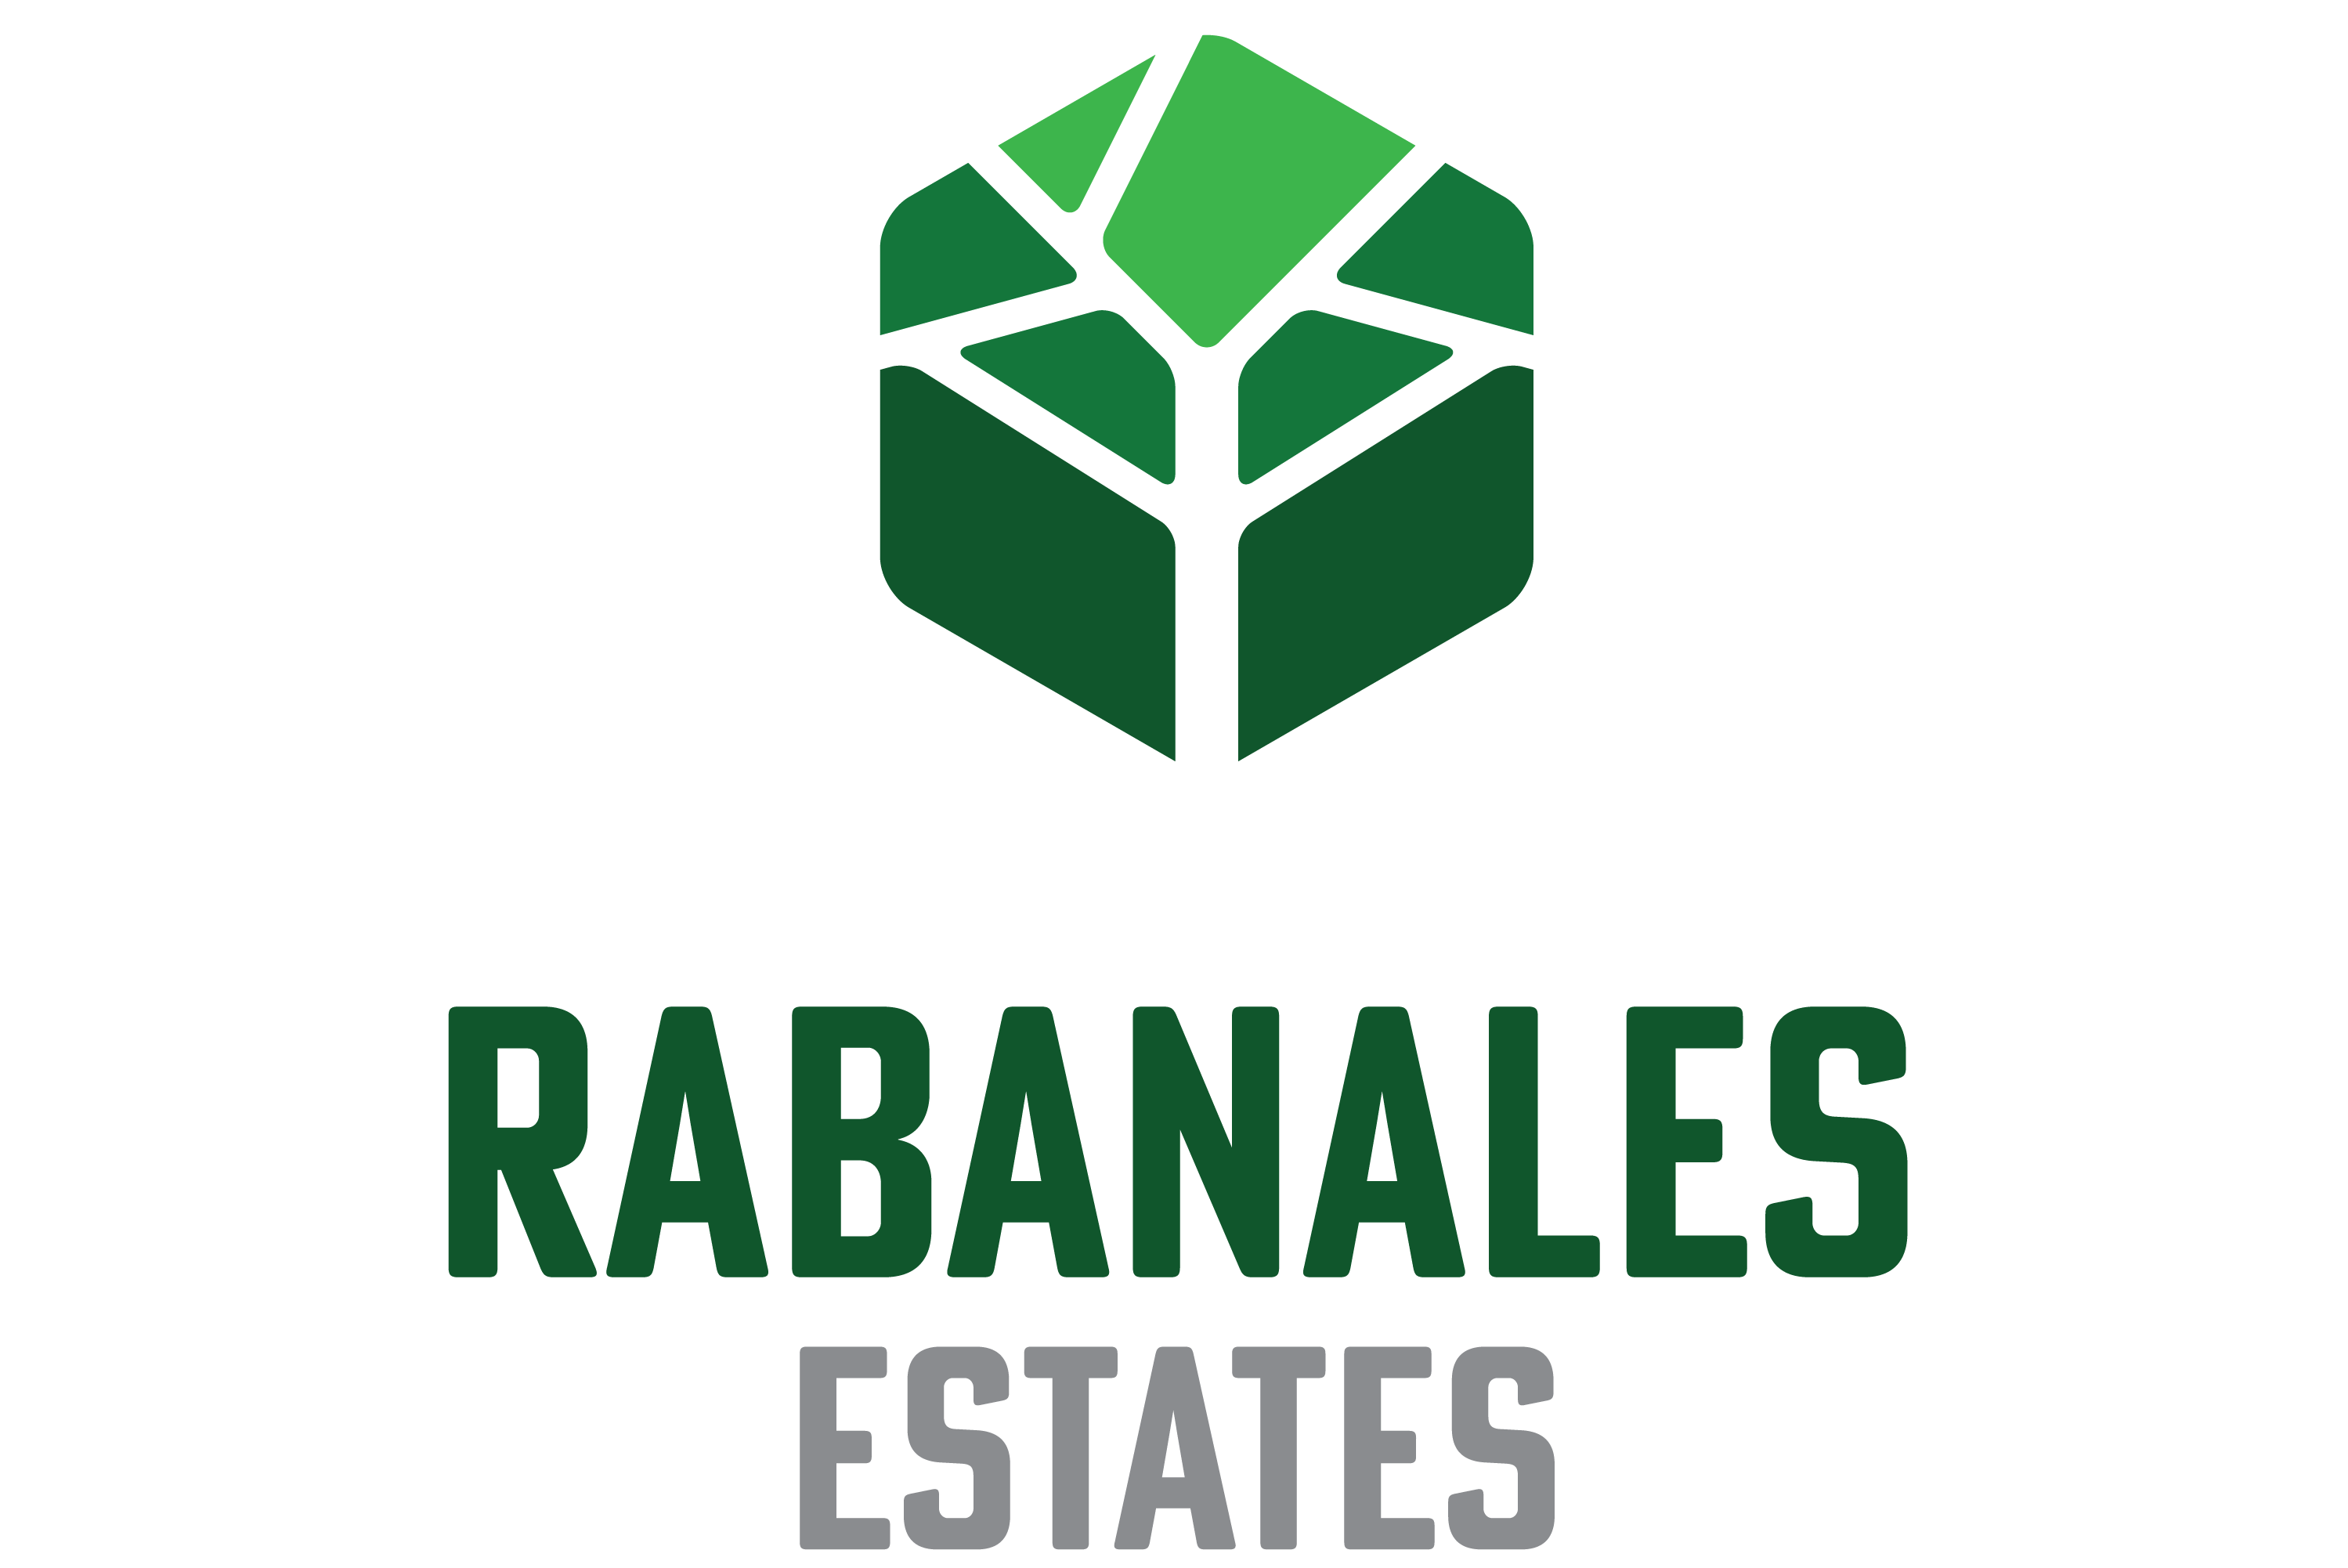 Rabanales Estates